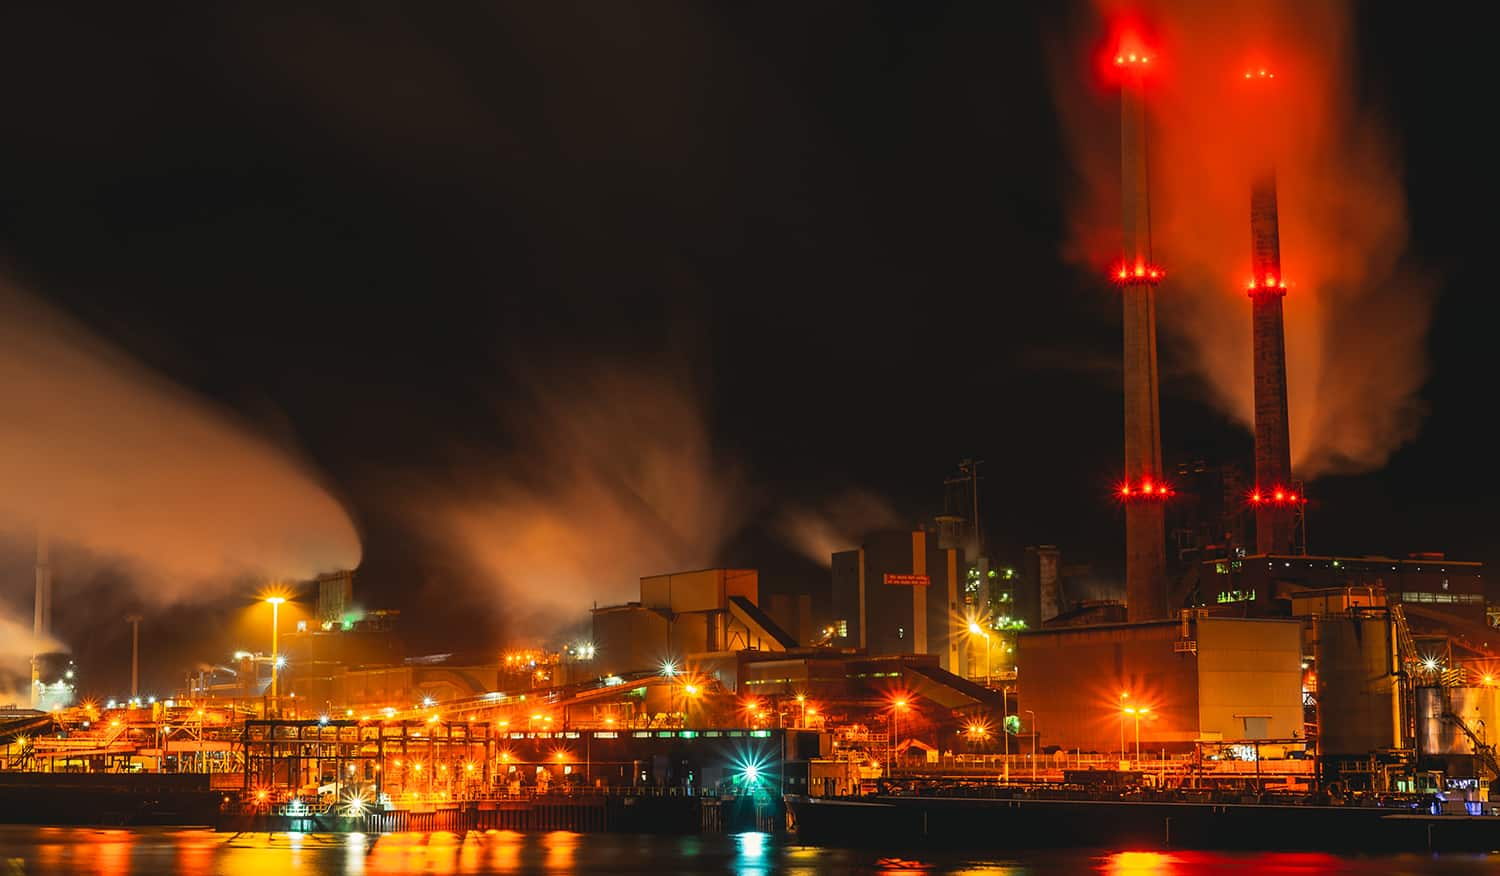 Image of natural gas plant at night